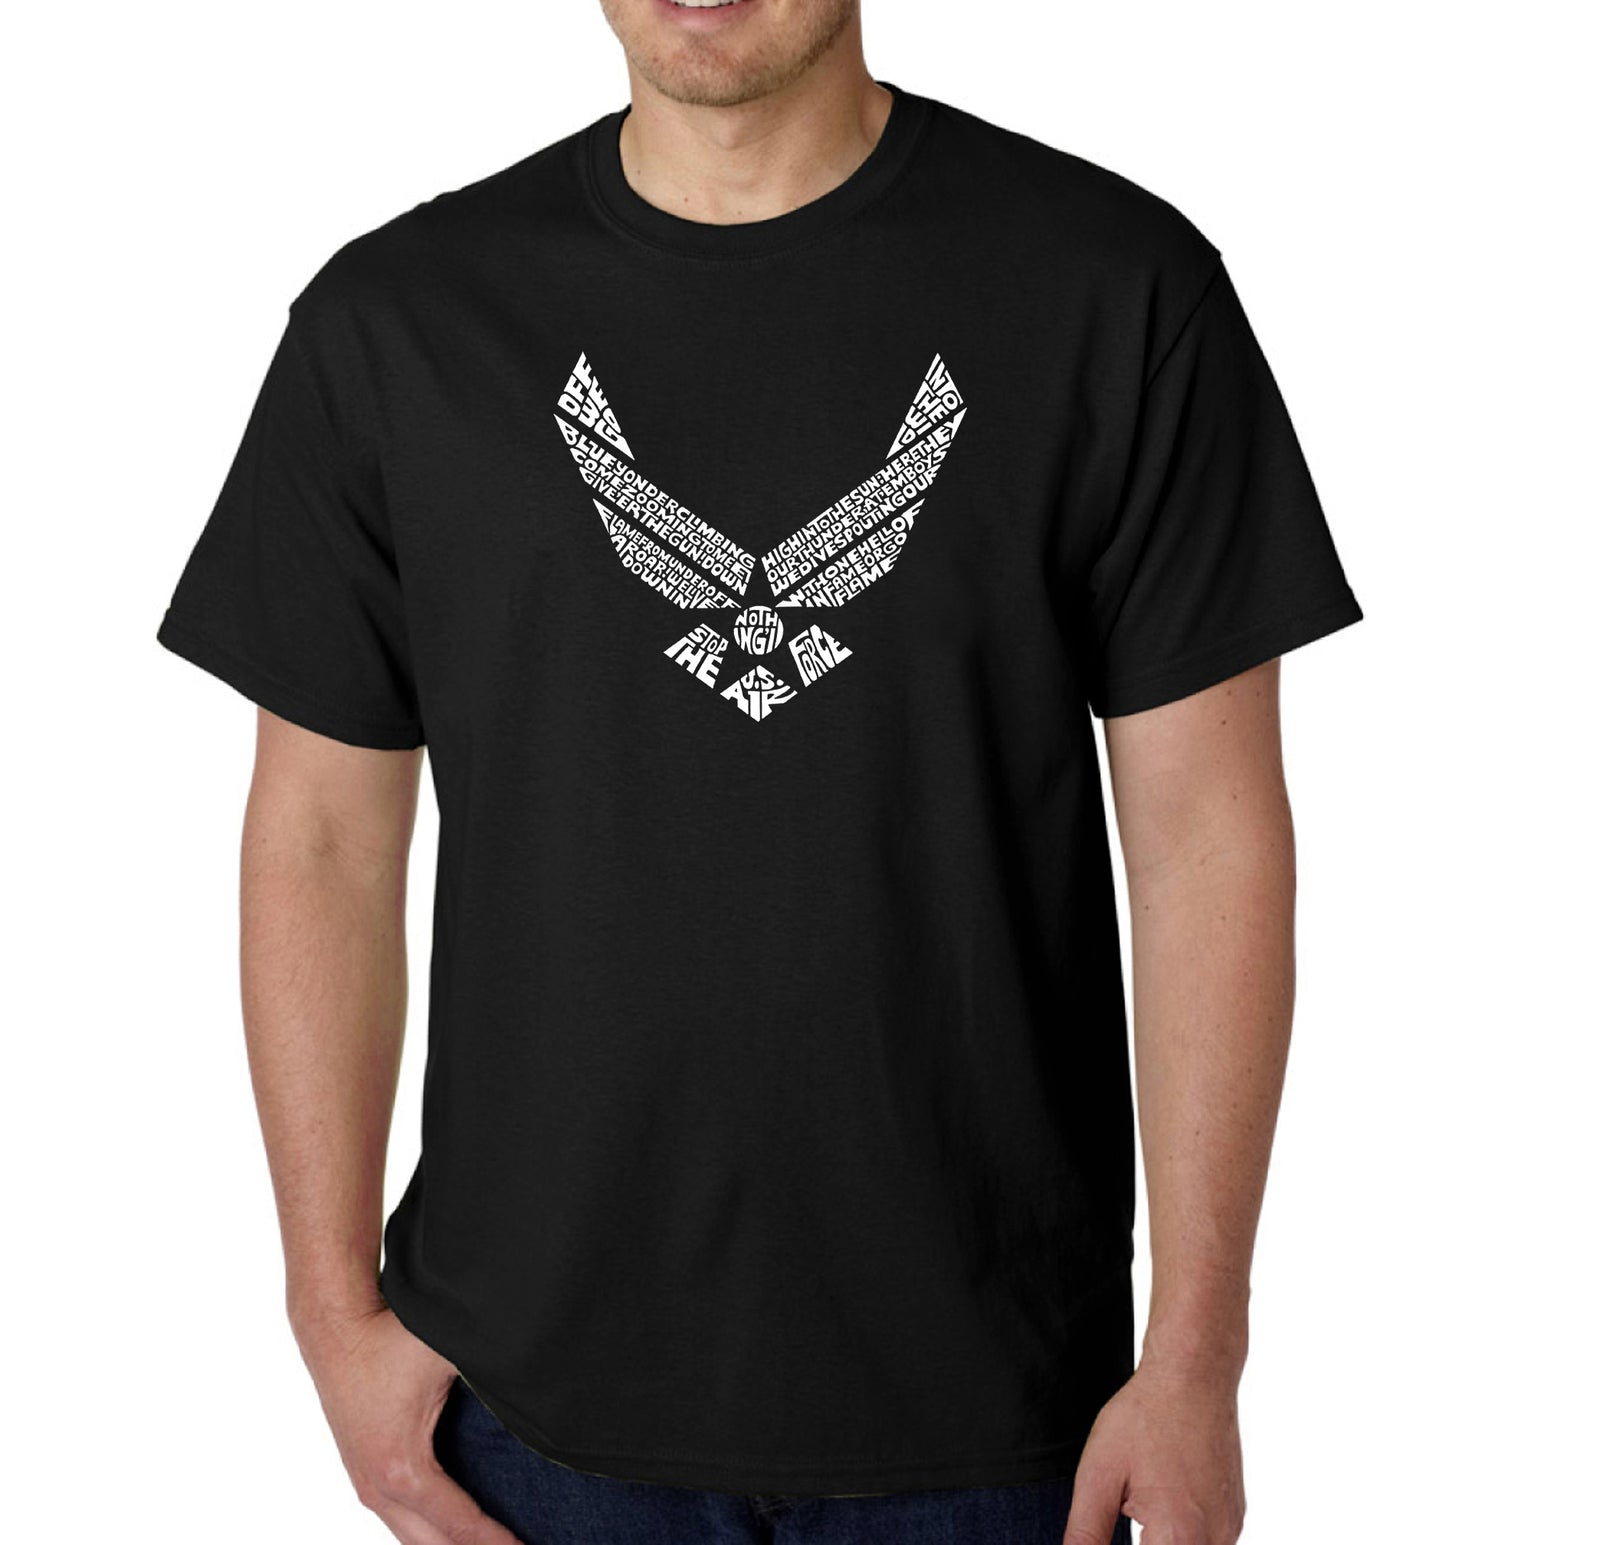 Men's T-shirt - LYRICS TO THE AIR FORCE SONG